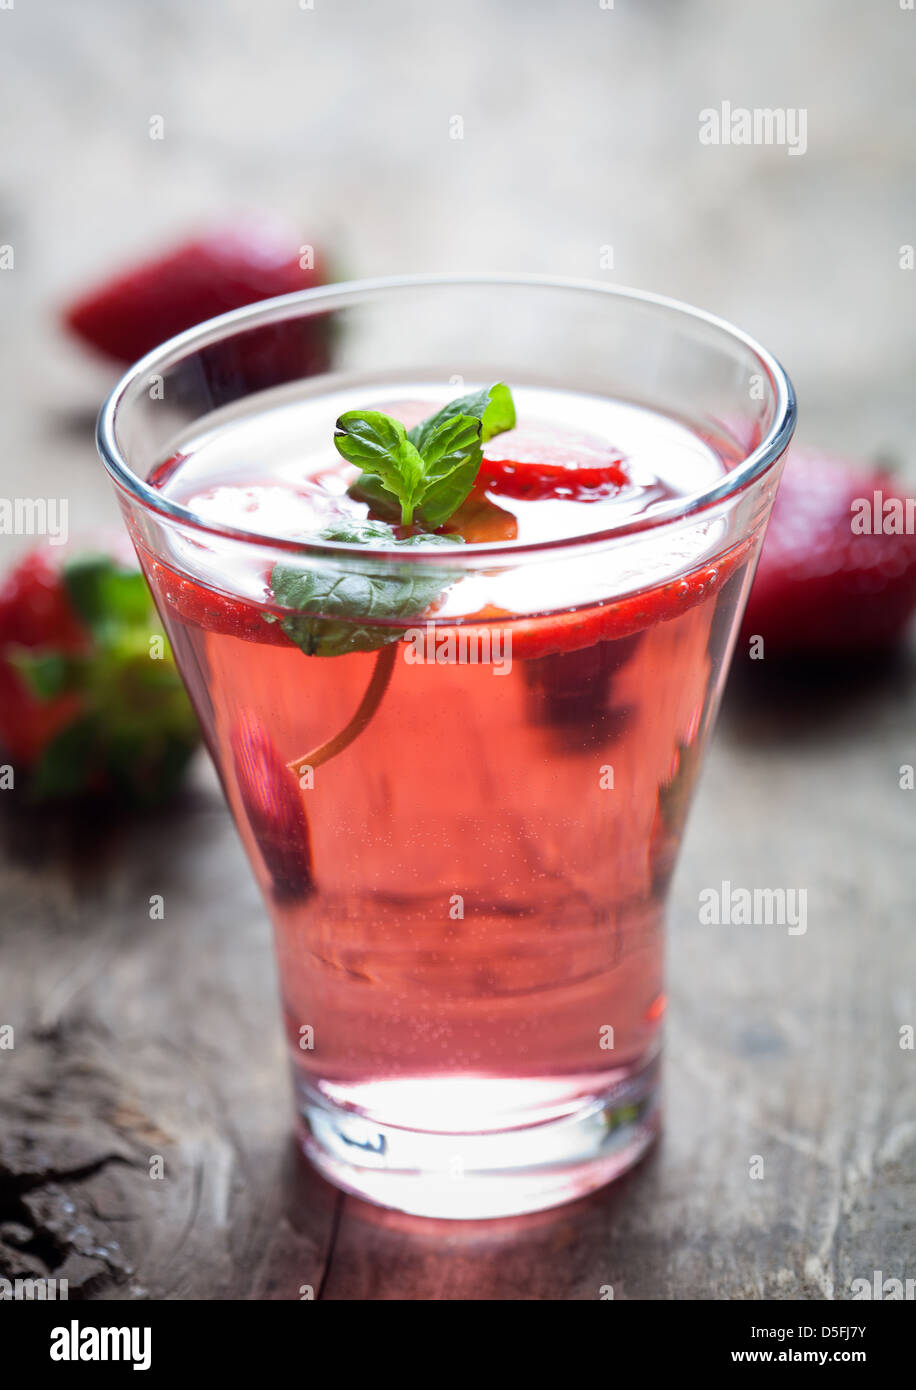 Cold summer drink with strawberries and mint  - Stock Image